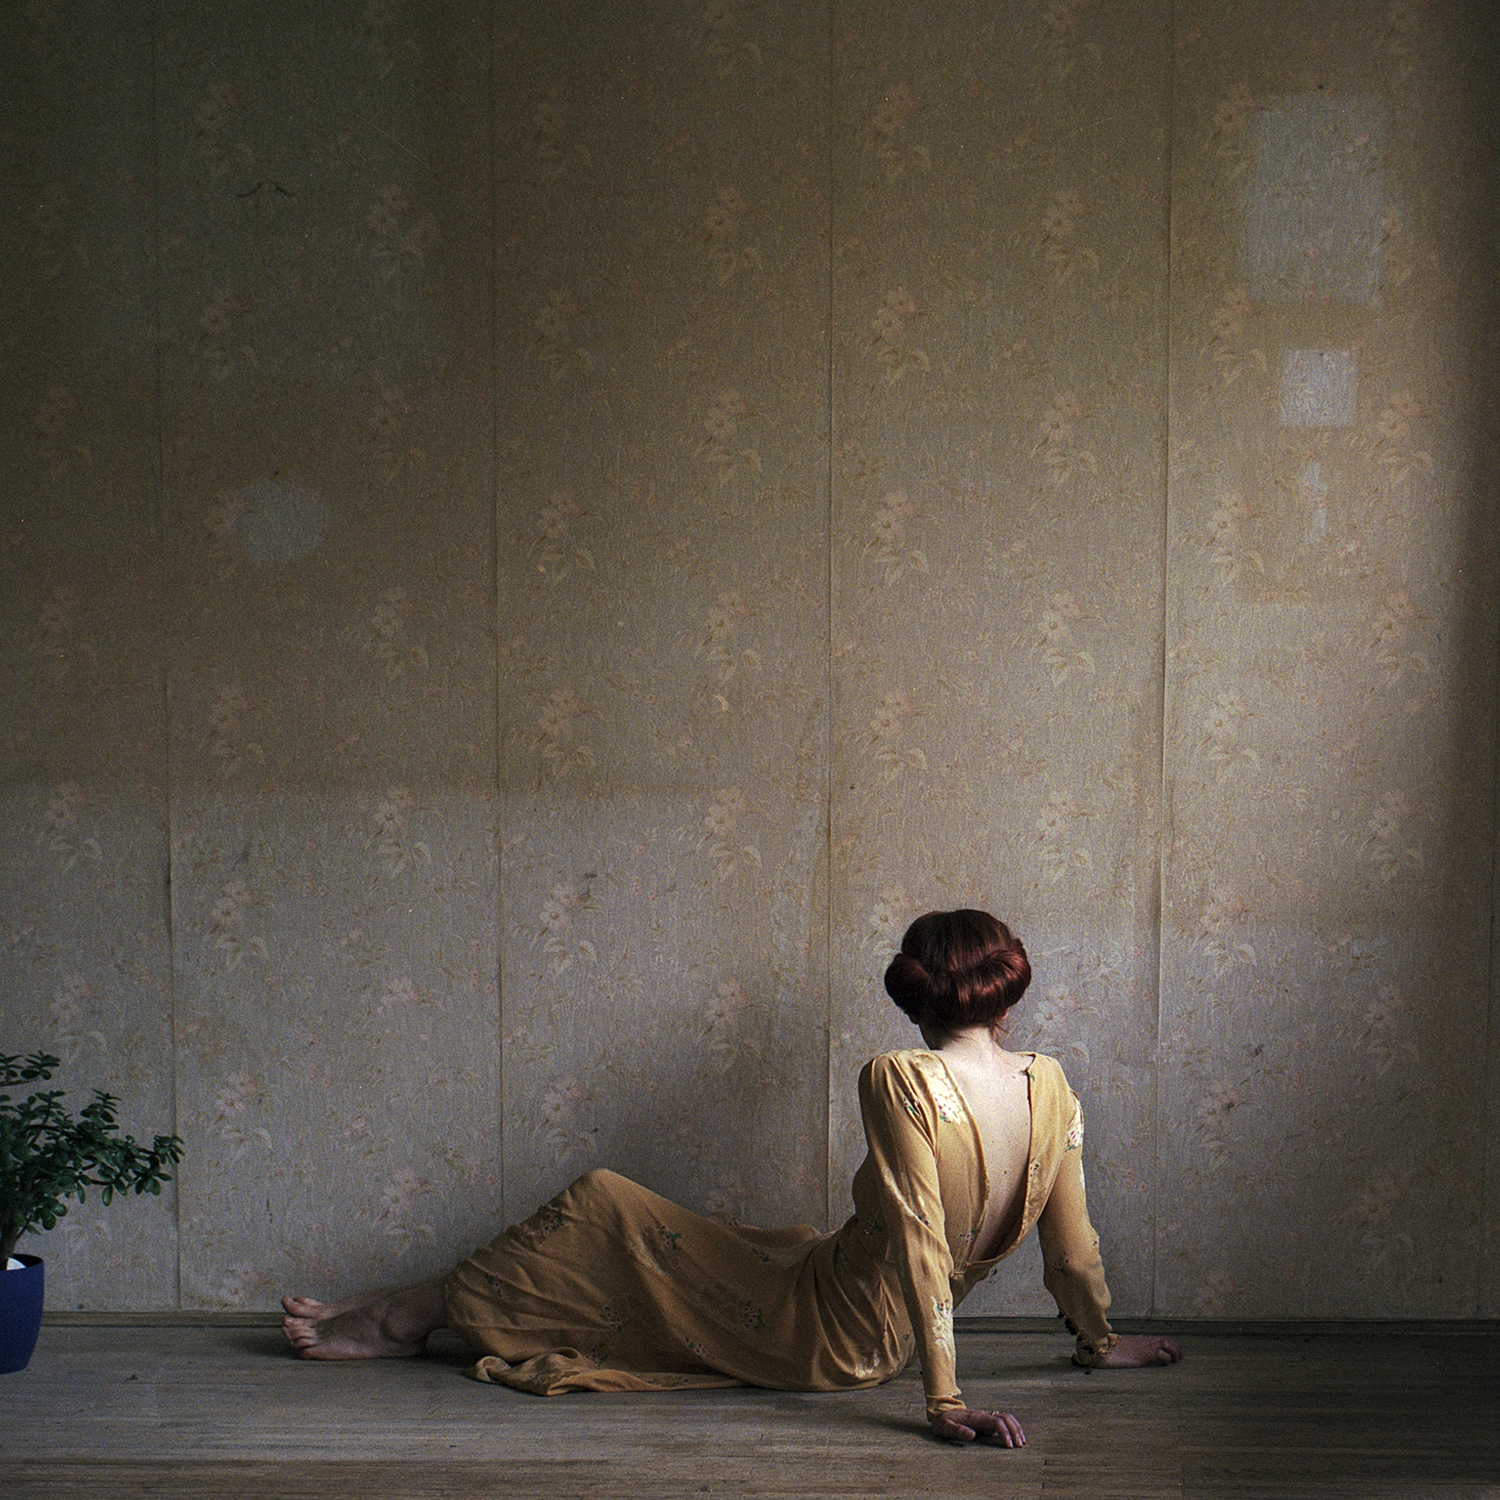 """ANATOMY OF MELANCHOLY photographed by Hannah Häseker"""